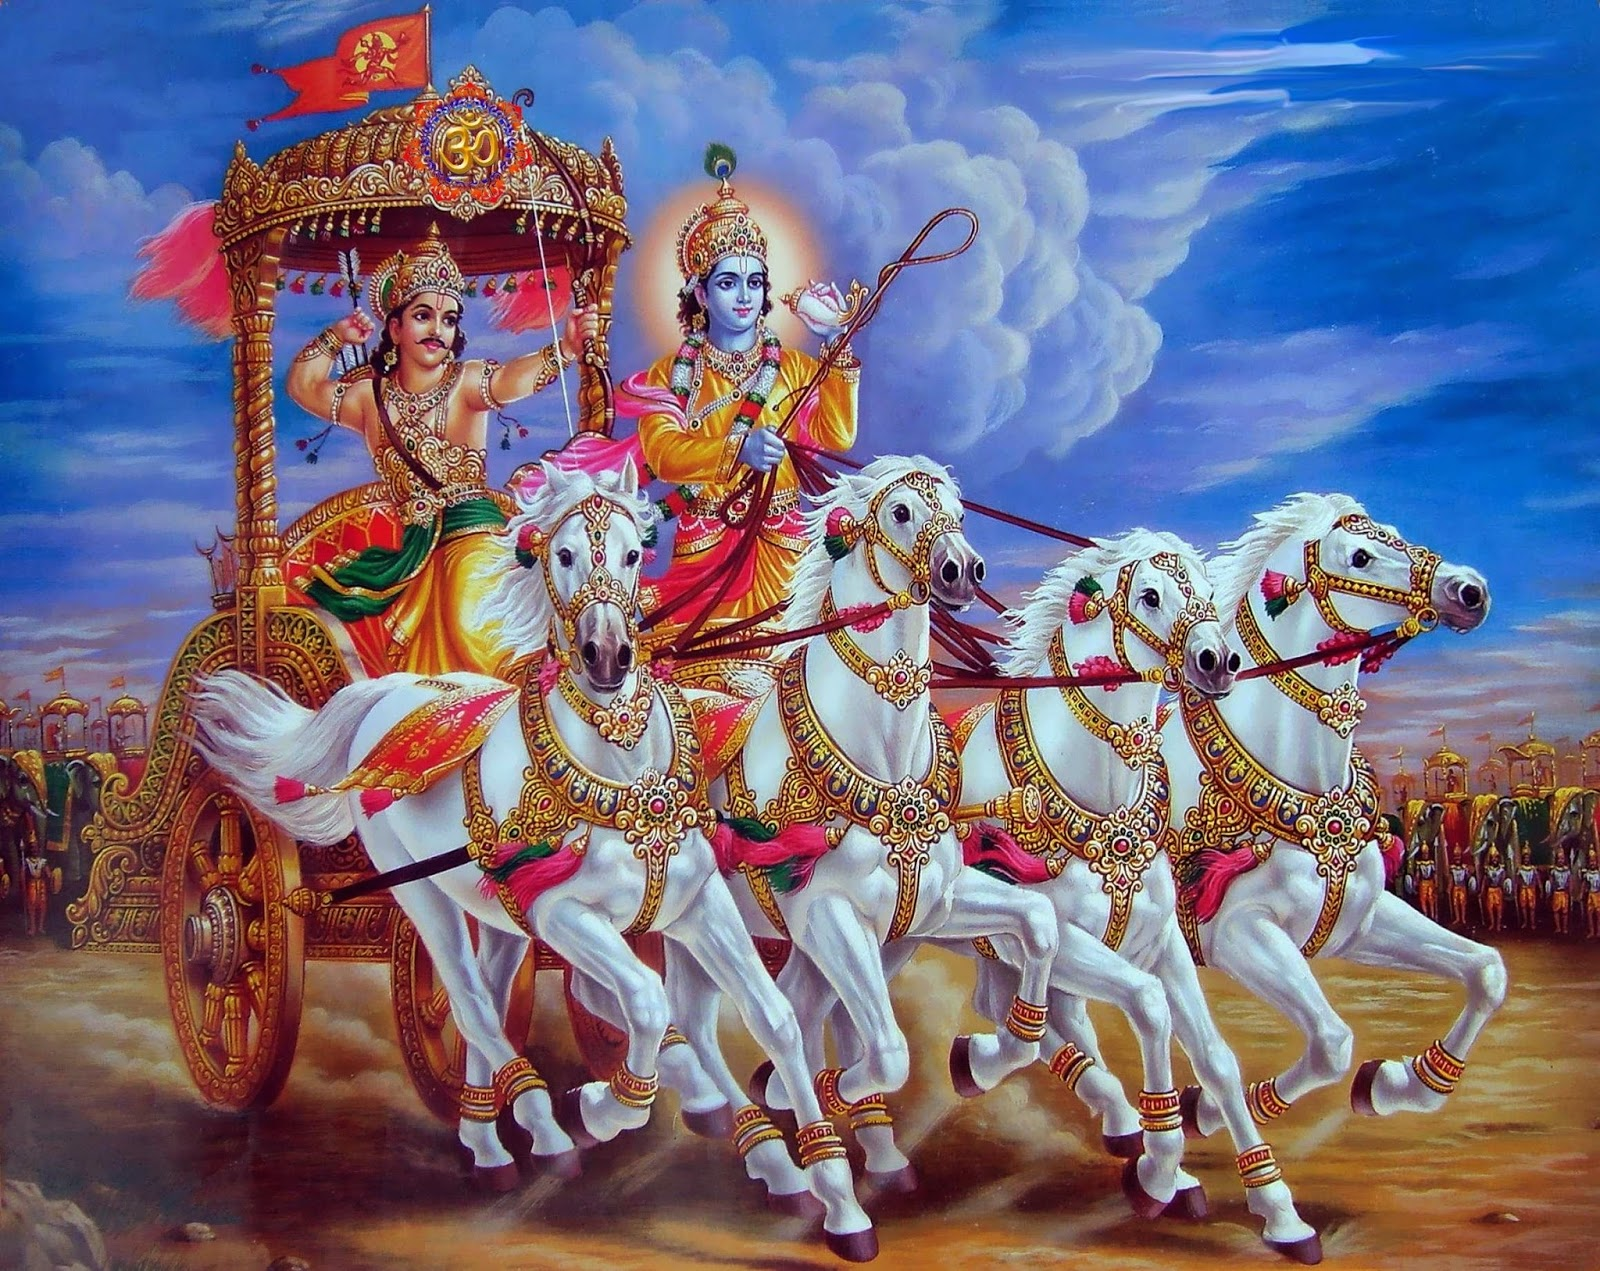 Lord Krishna image driving the chariot of Arjuna